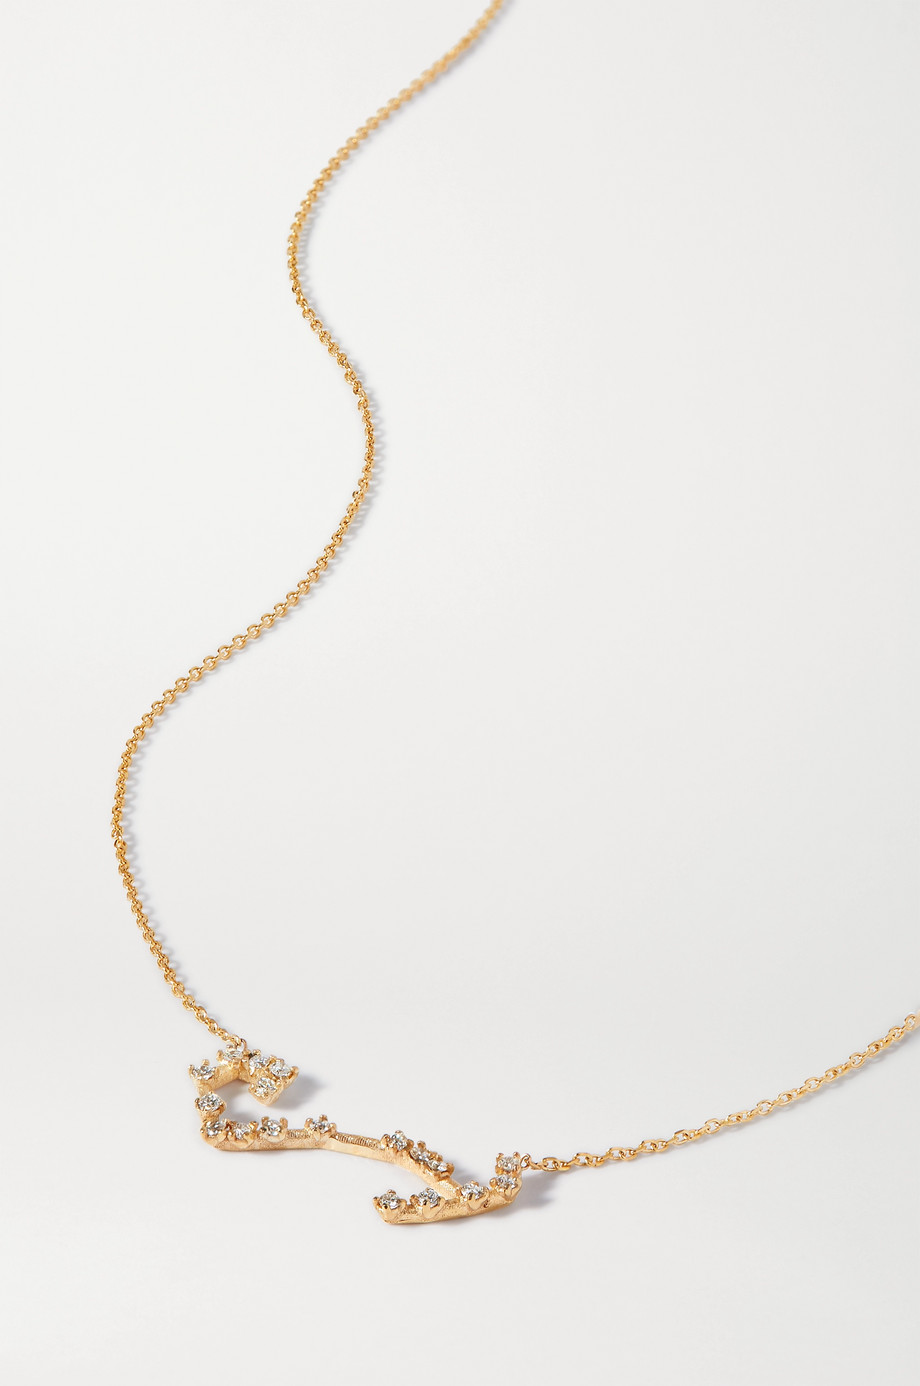 SARAH & SEBASTIAN Celestial Scorpio 10-karat gold diamond necklace